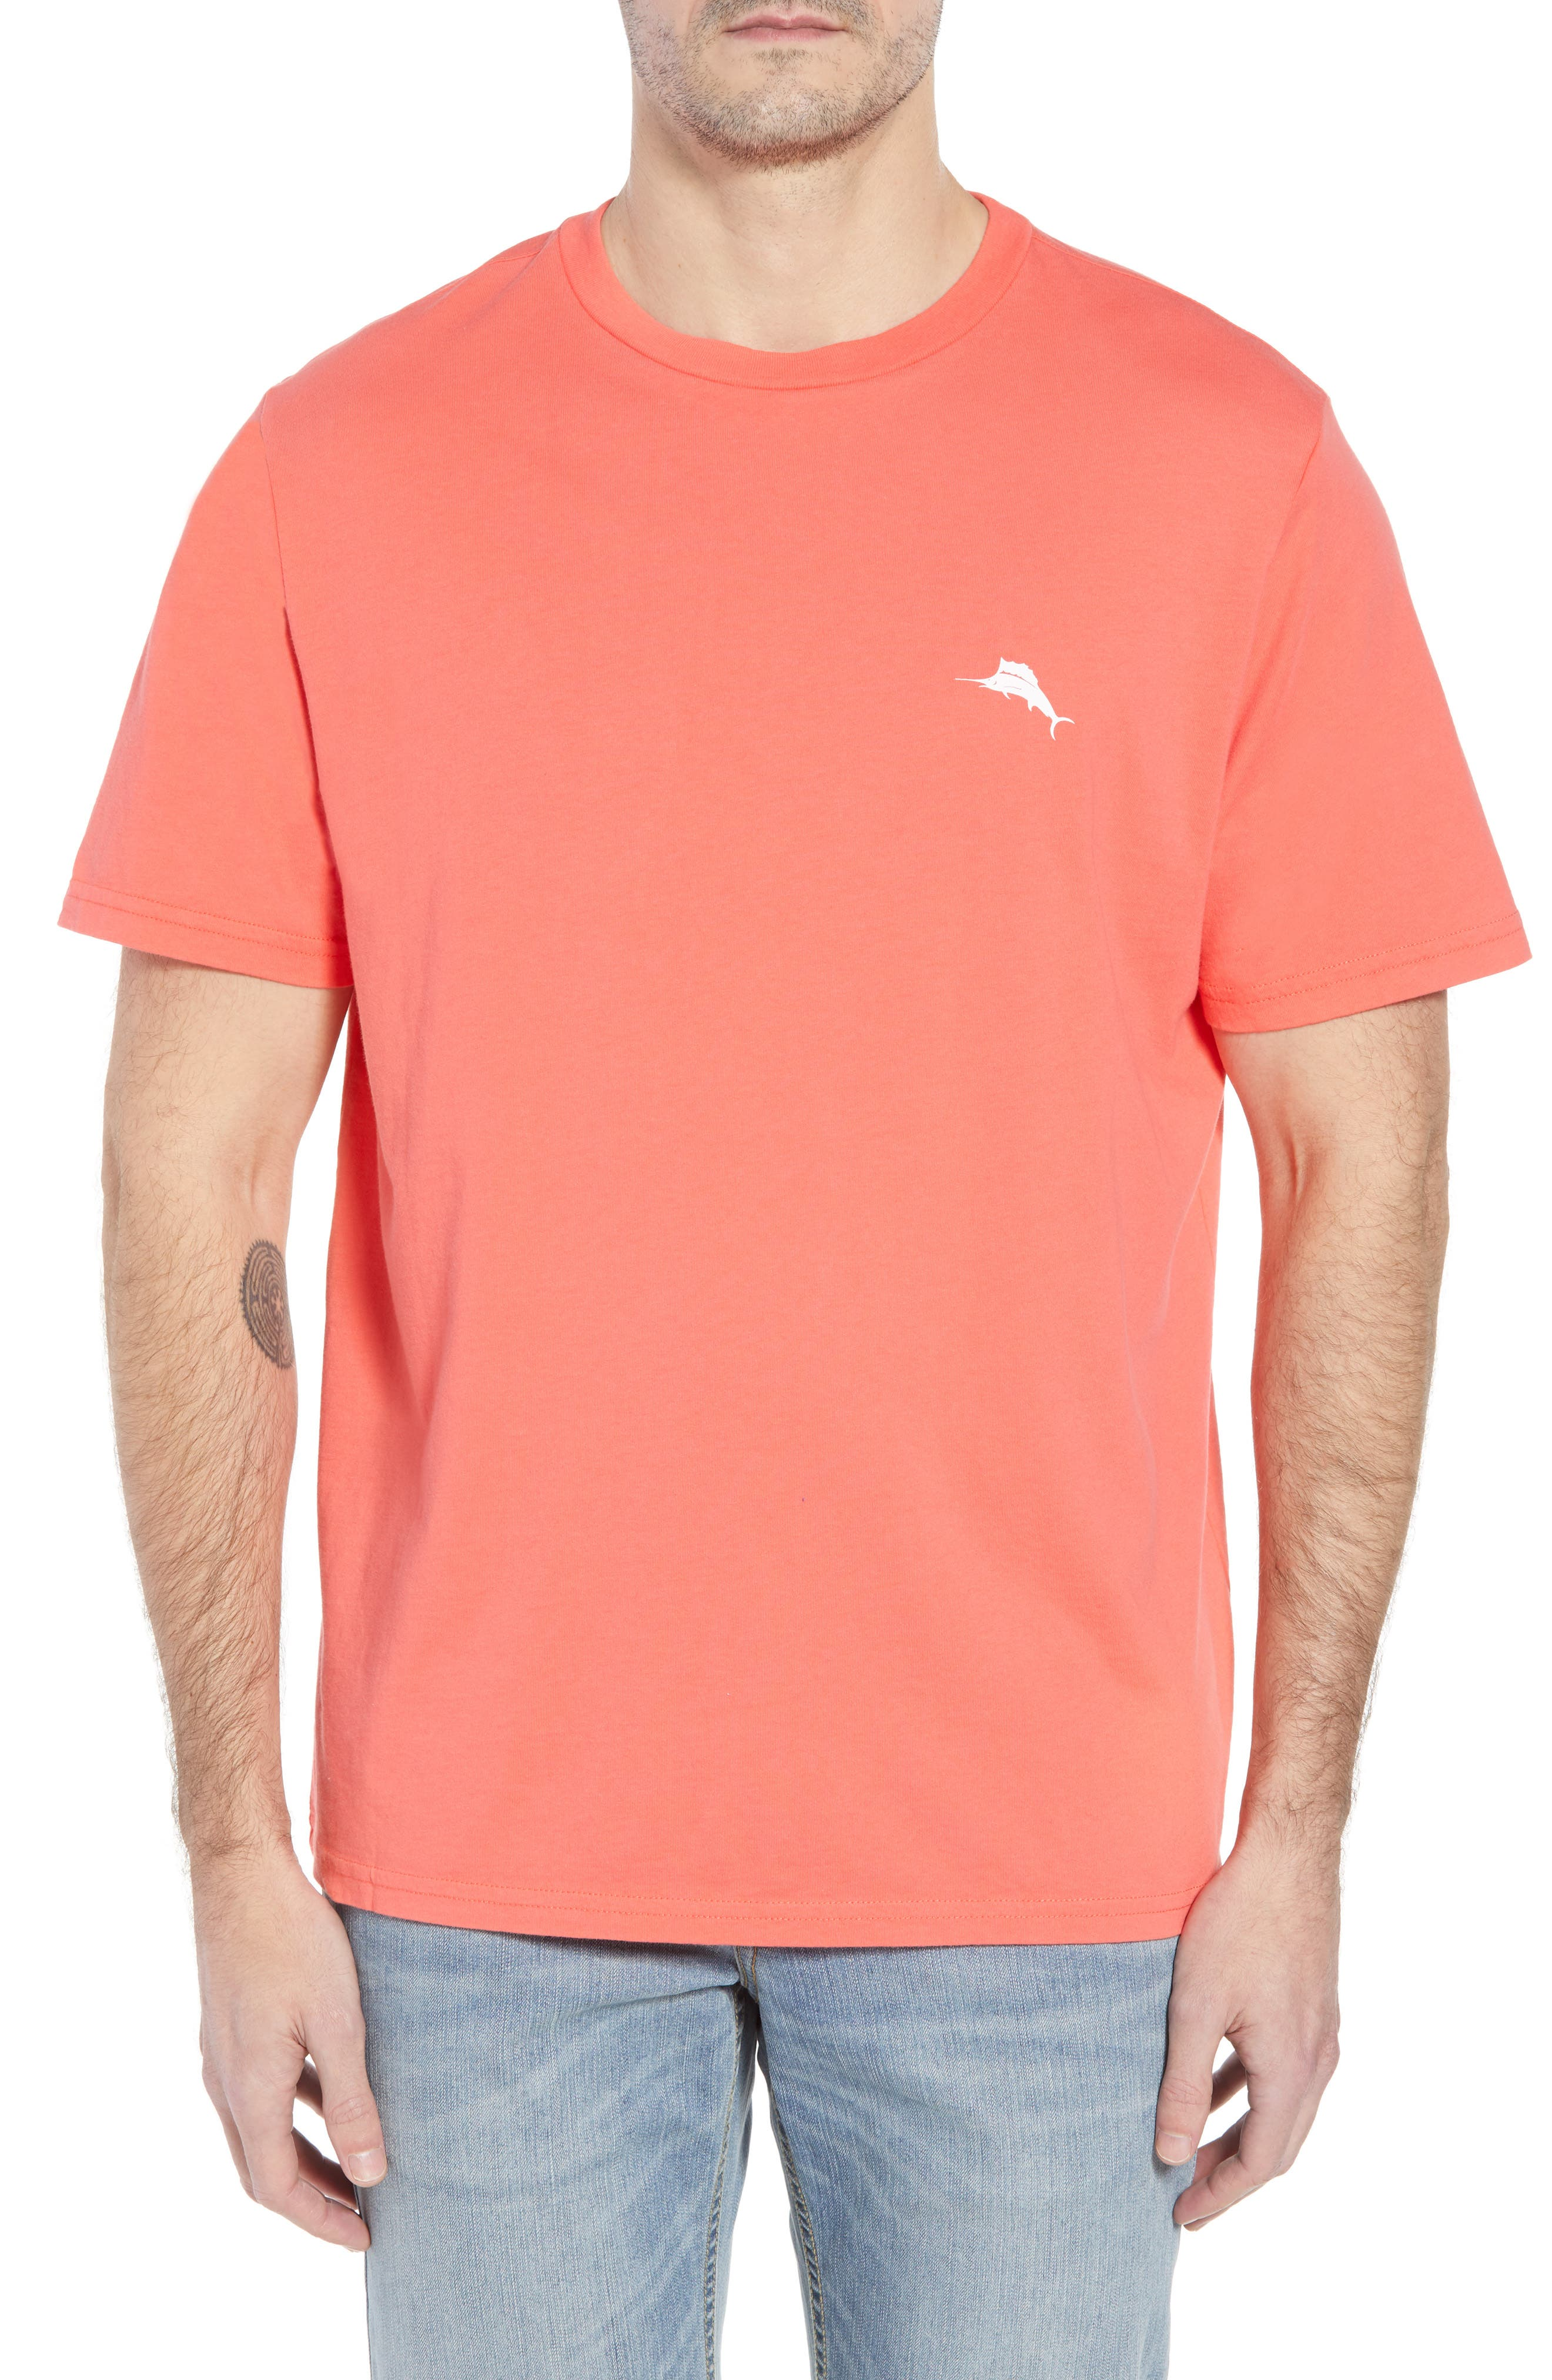 Catch the Wave Graphic T-Shirt,                             Main thumbnail 1, color,                             800